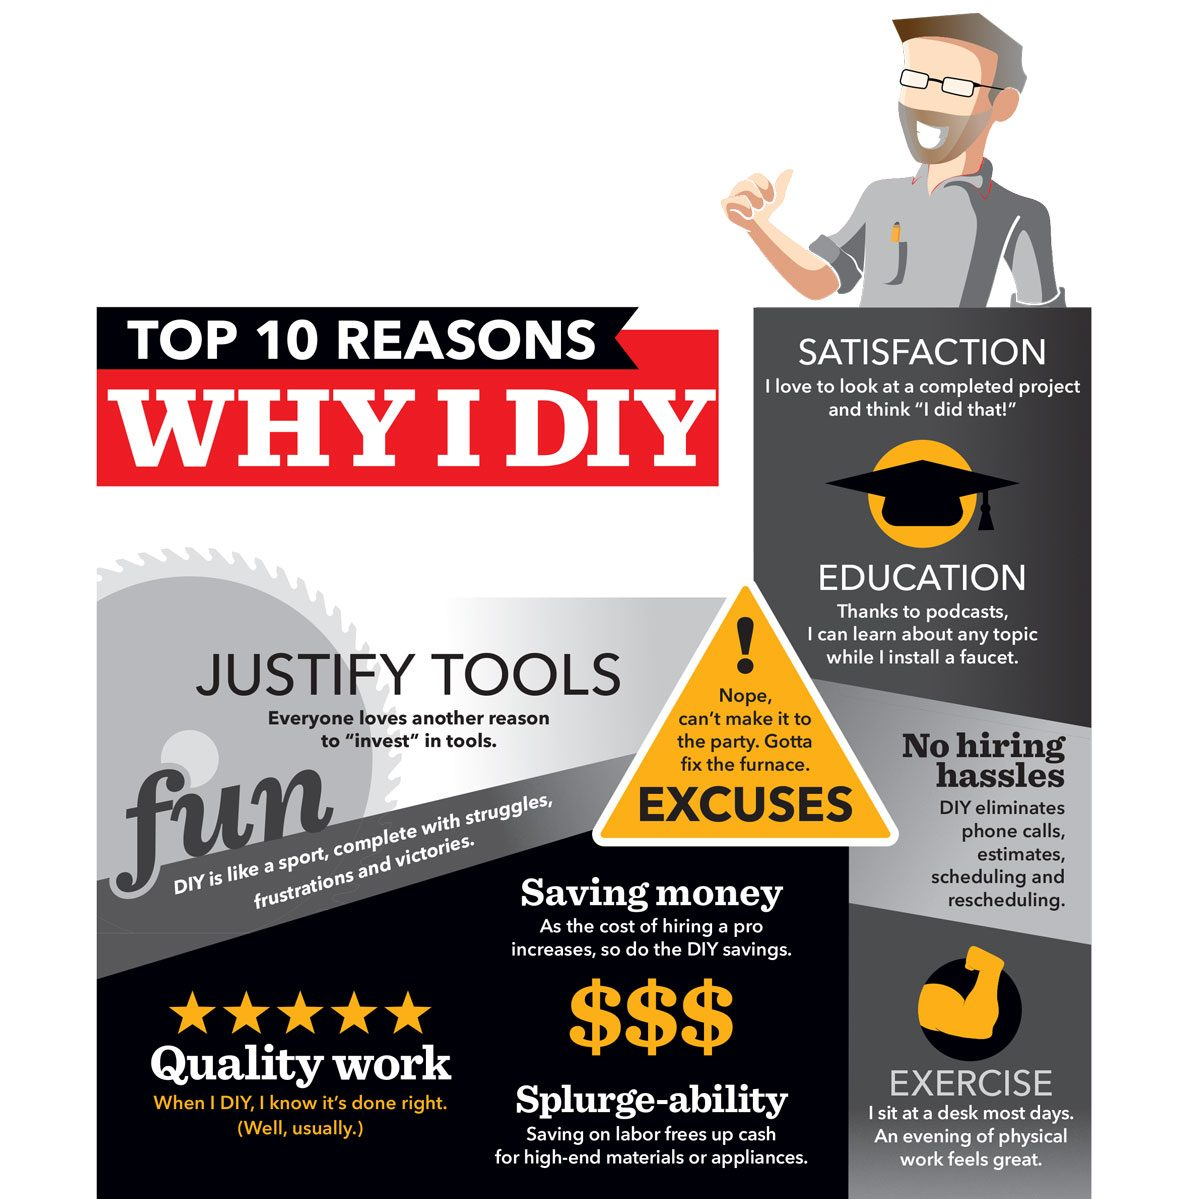 top 10 reasons why i DIY